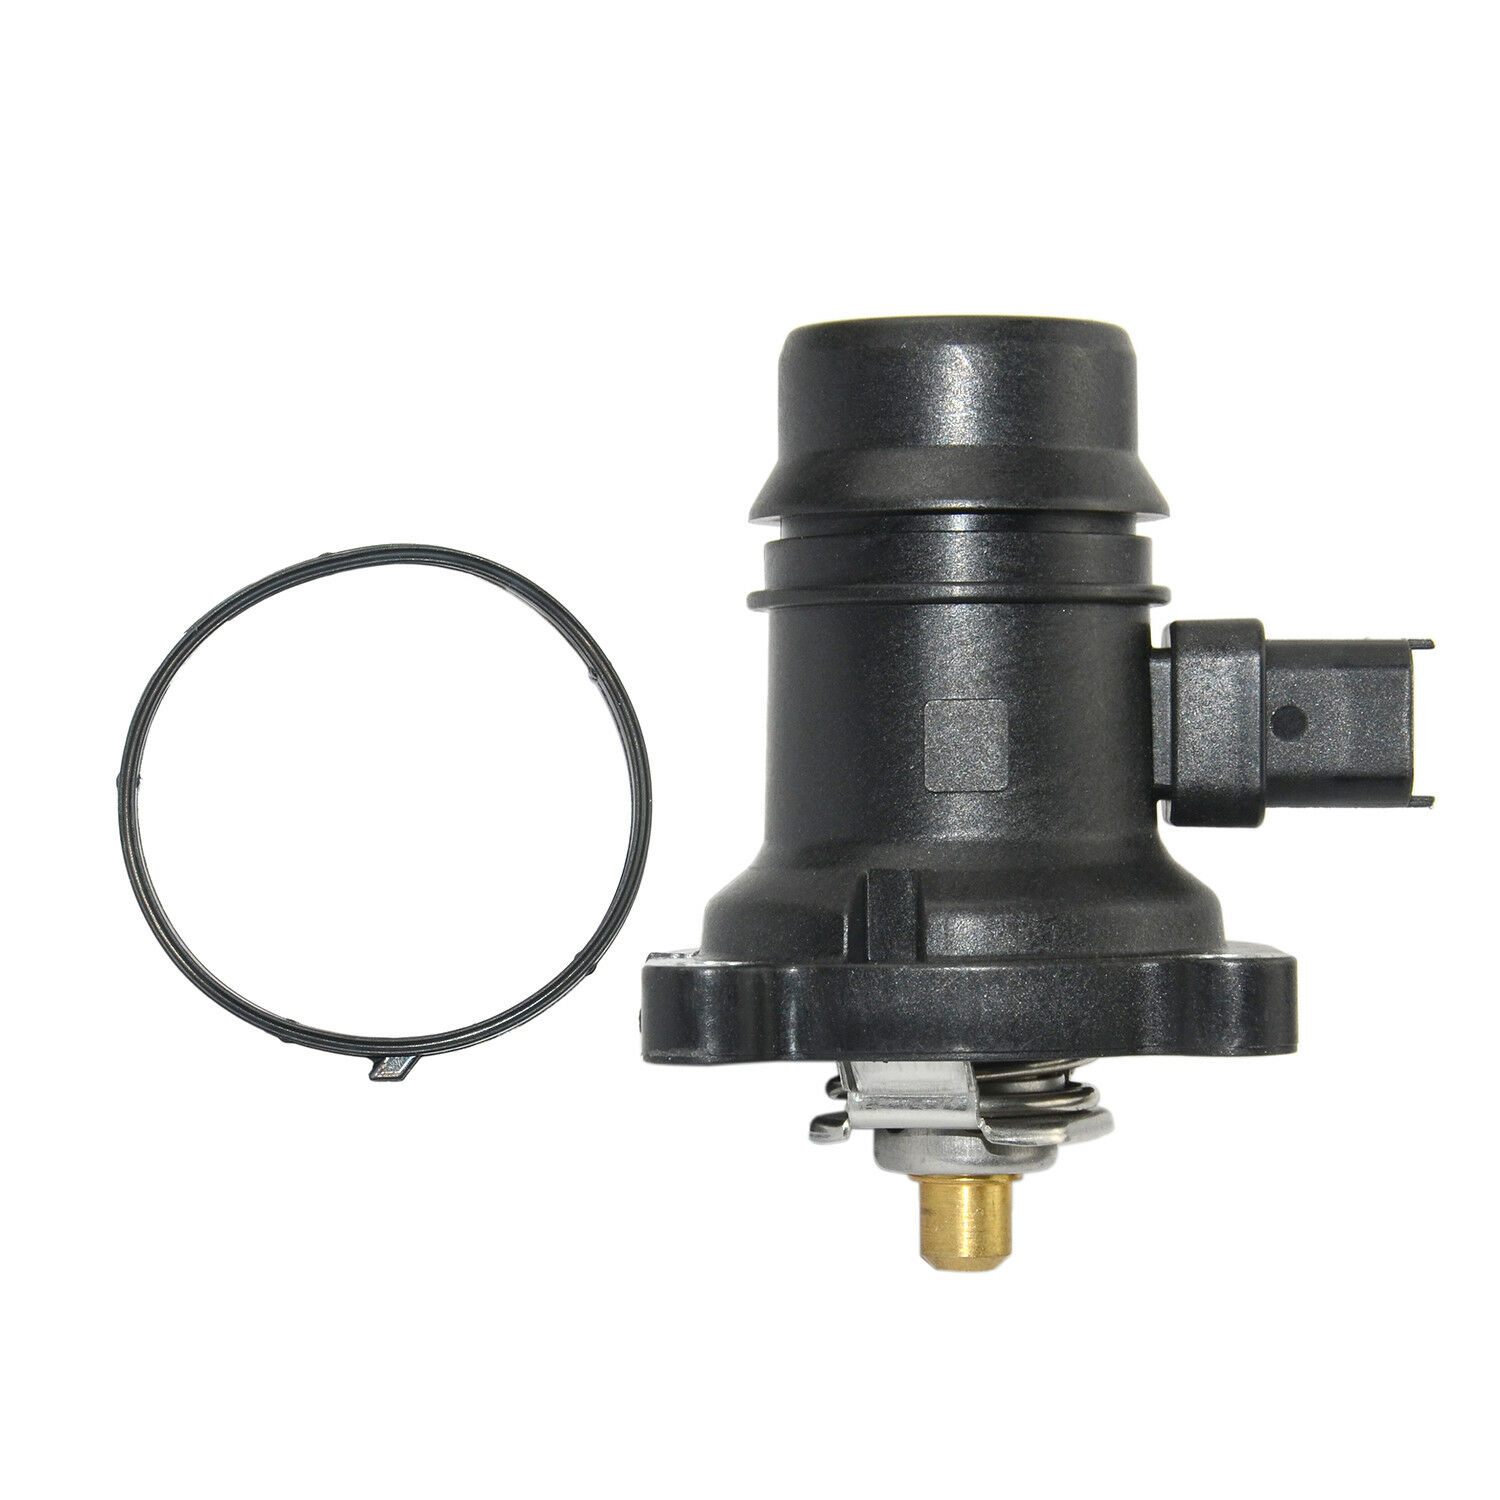 New Mahle Fur  Vauxhall Thermostat and Seal Corsa D E Astra J 55593033 1.2 1.4